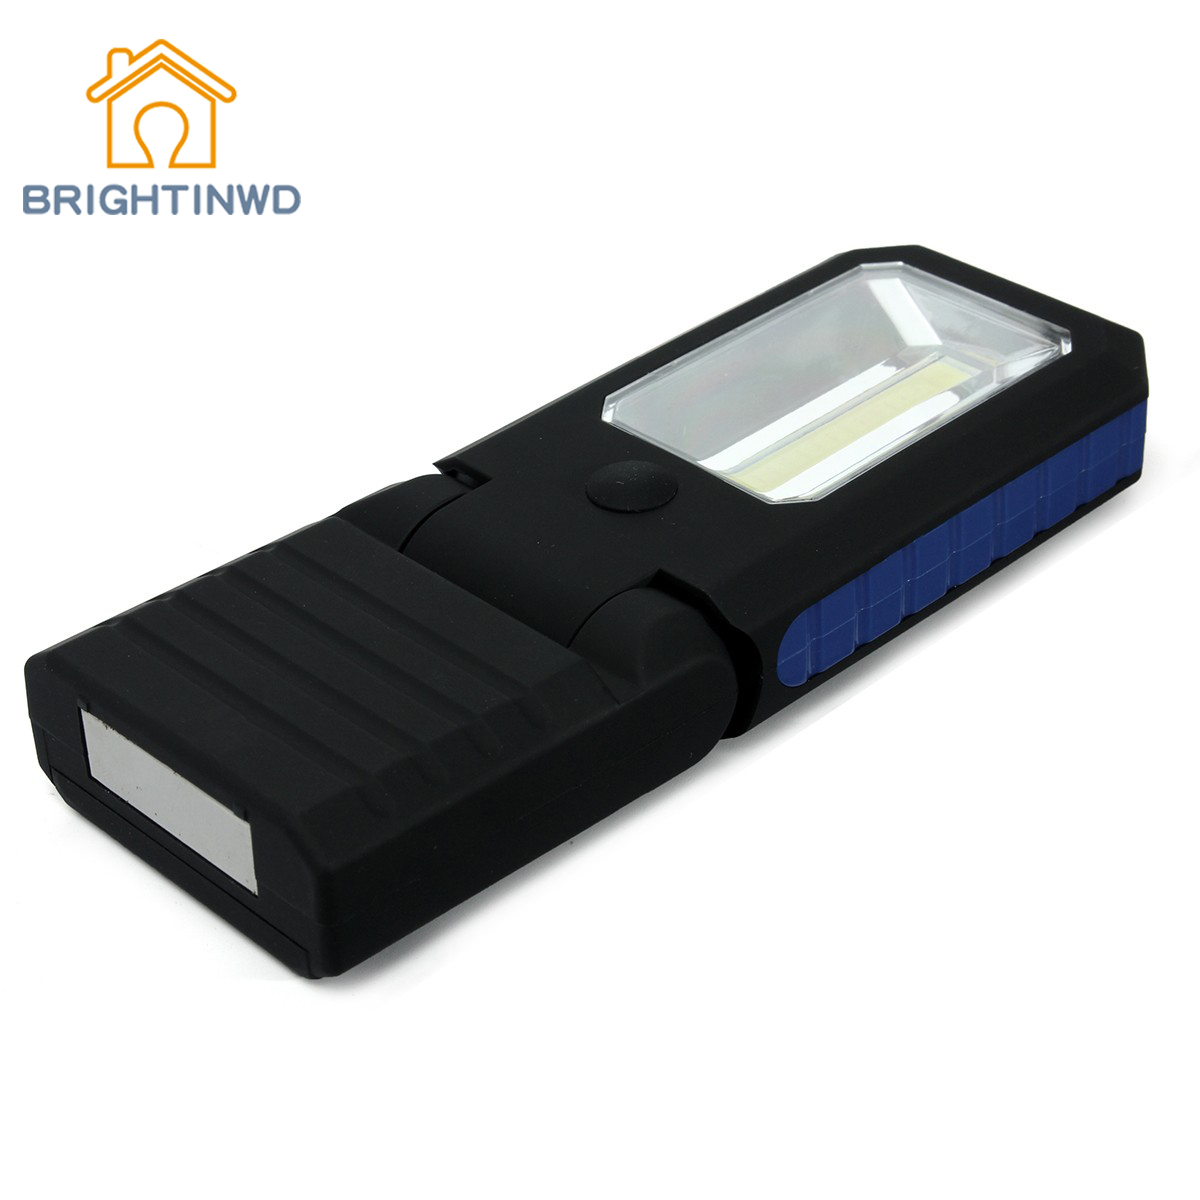 BRIGHTINWD Torch Magnetic COB LED Car Emergency Working Light Portable Tent Lamp Camping Lantern Lamp Outdoor Hanging Lamp